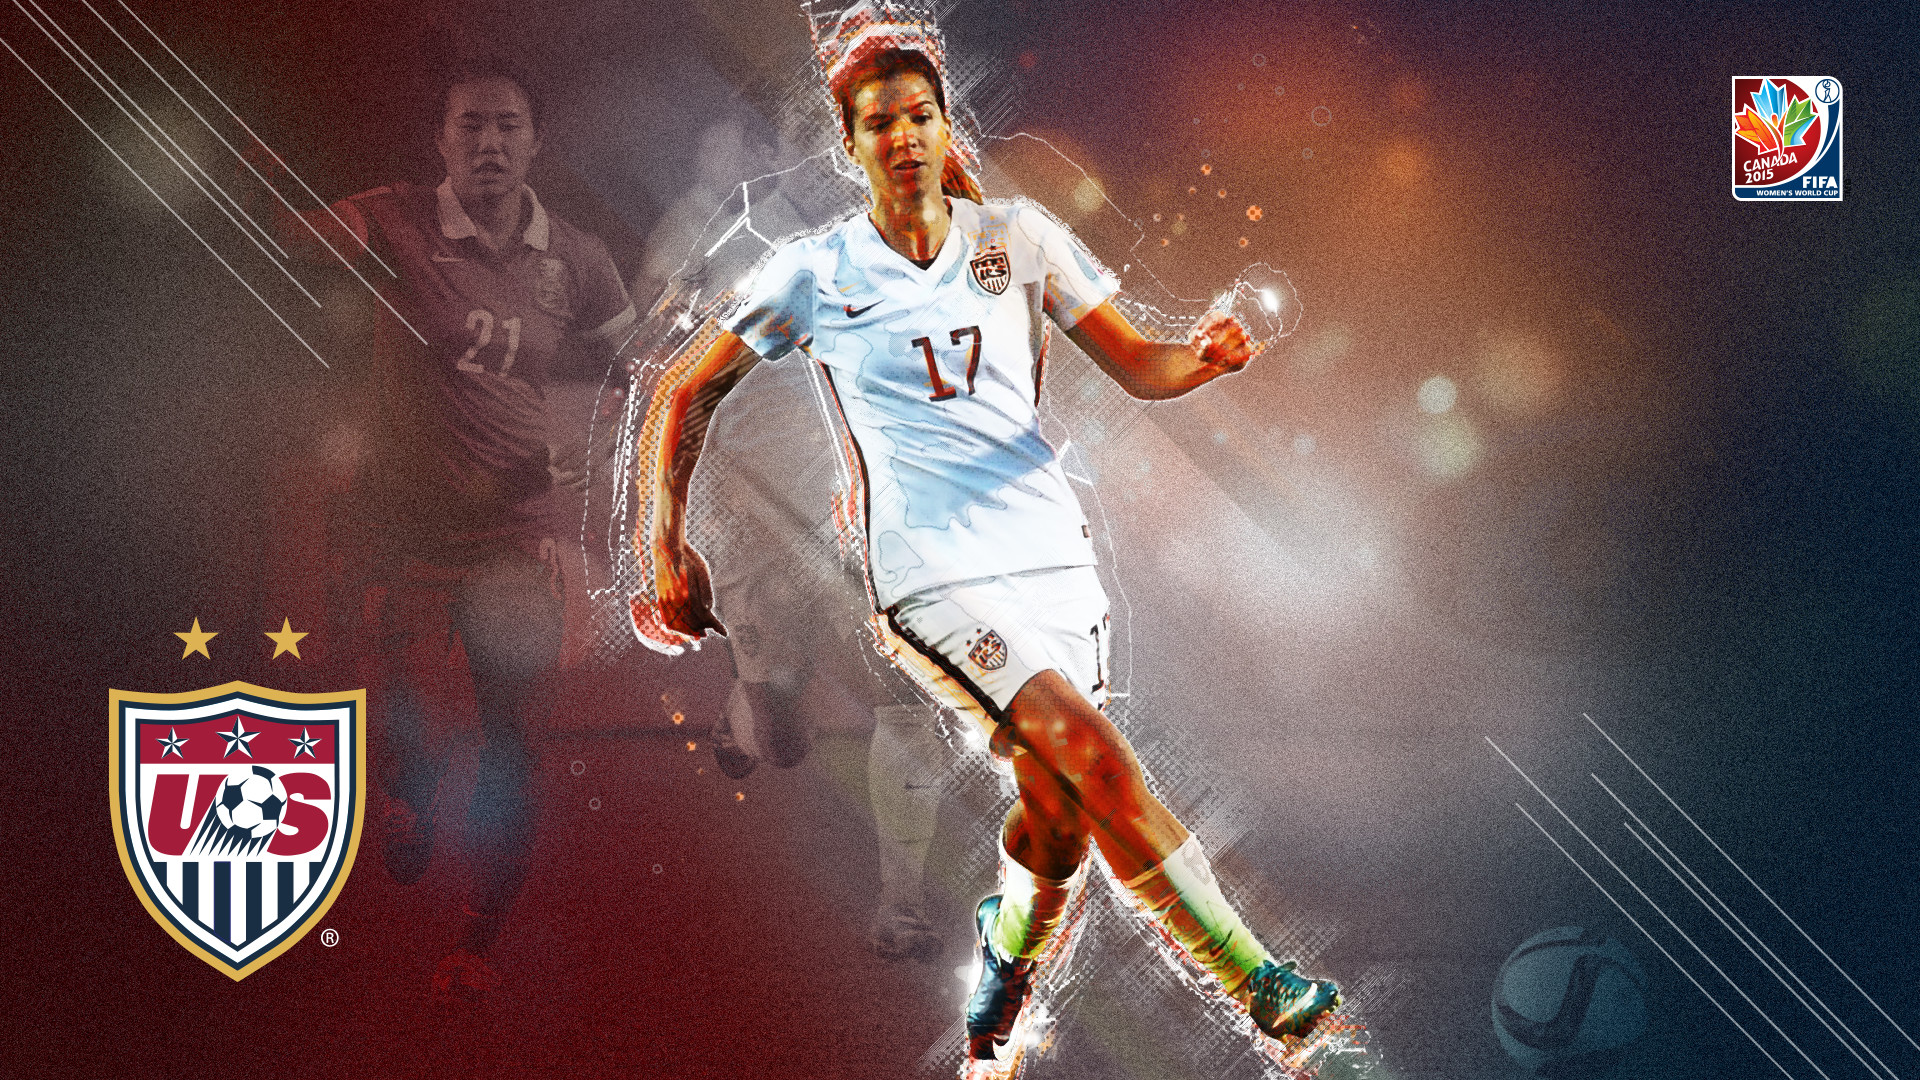 1920x1080 Images of Tobin Heath Hd Wallpaper - #SC ...